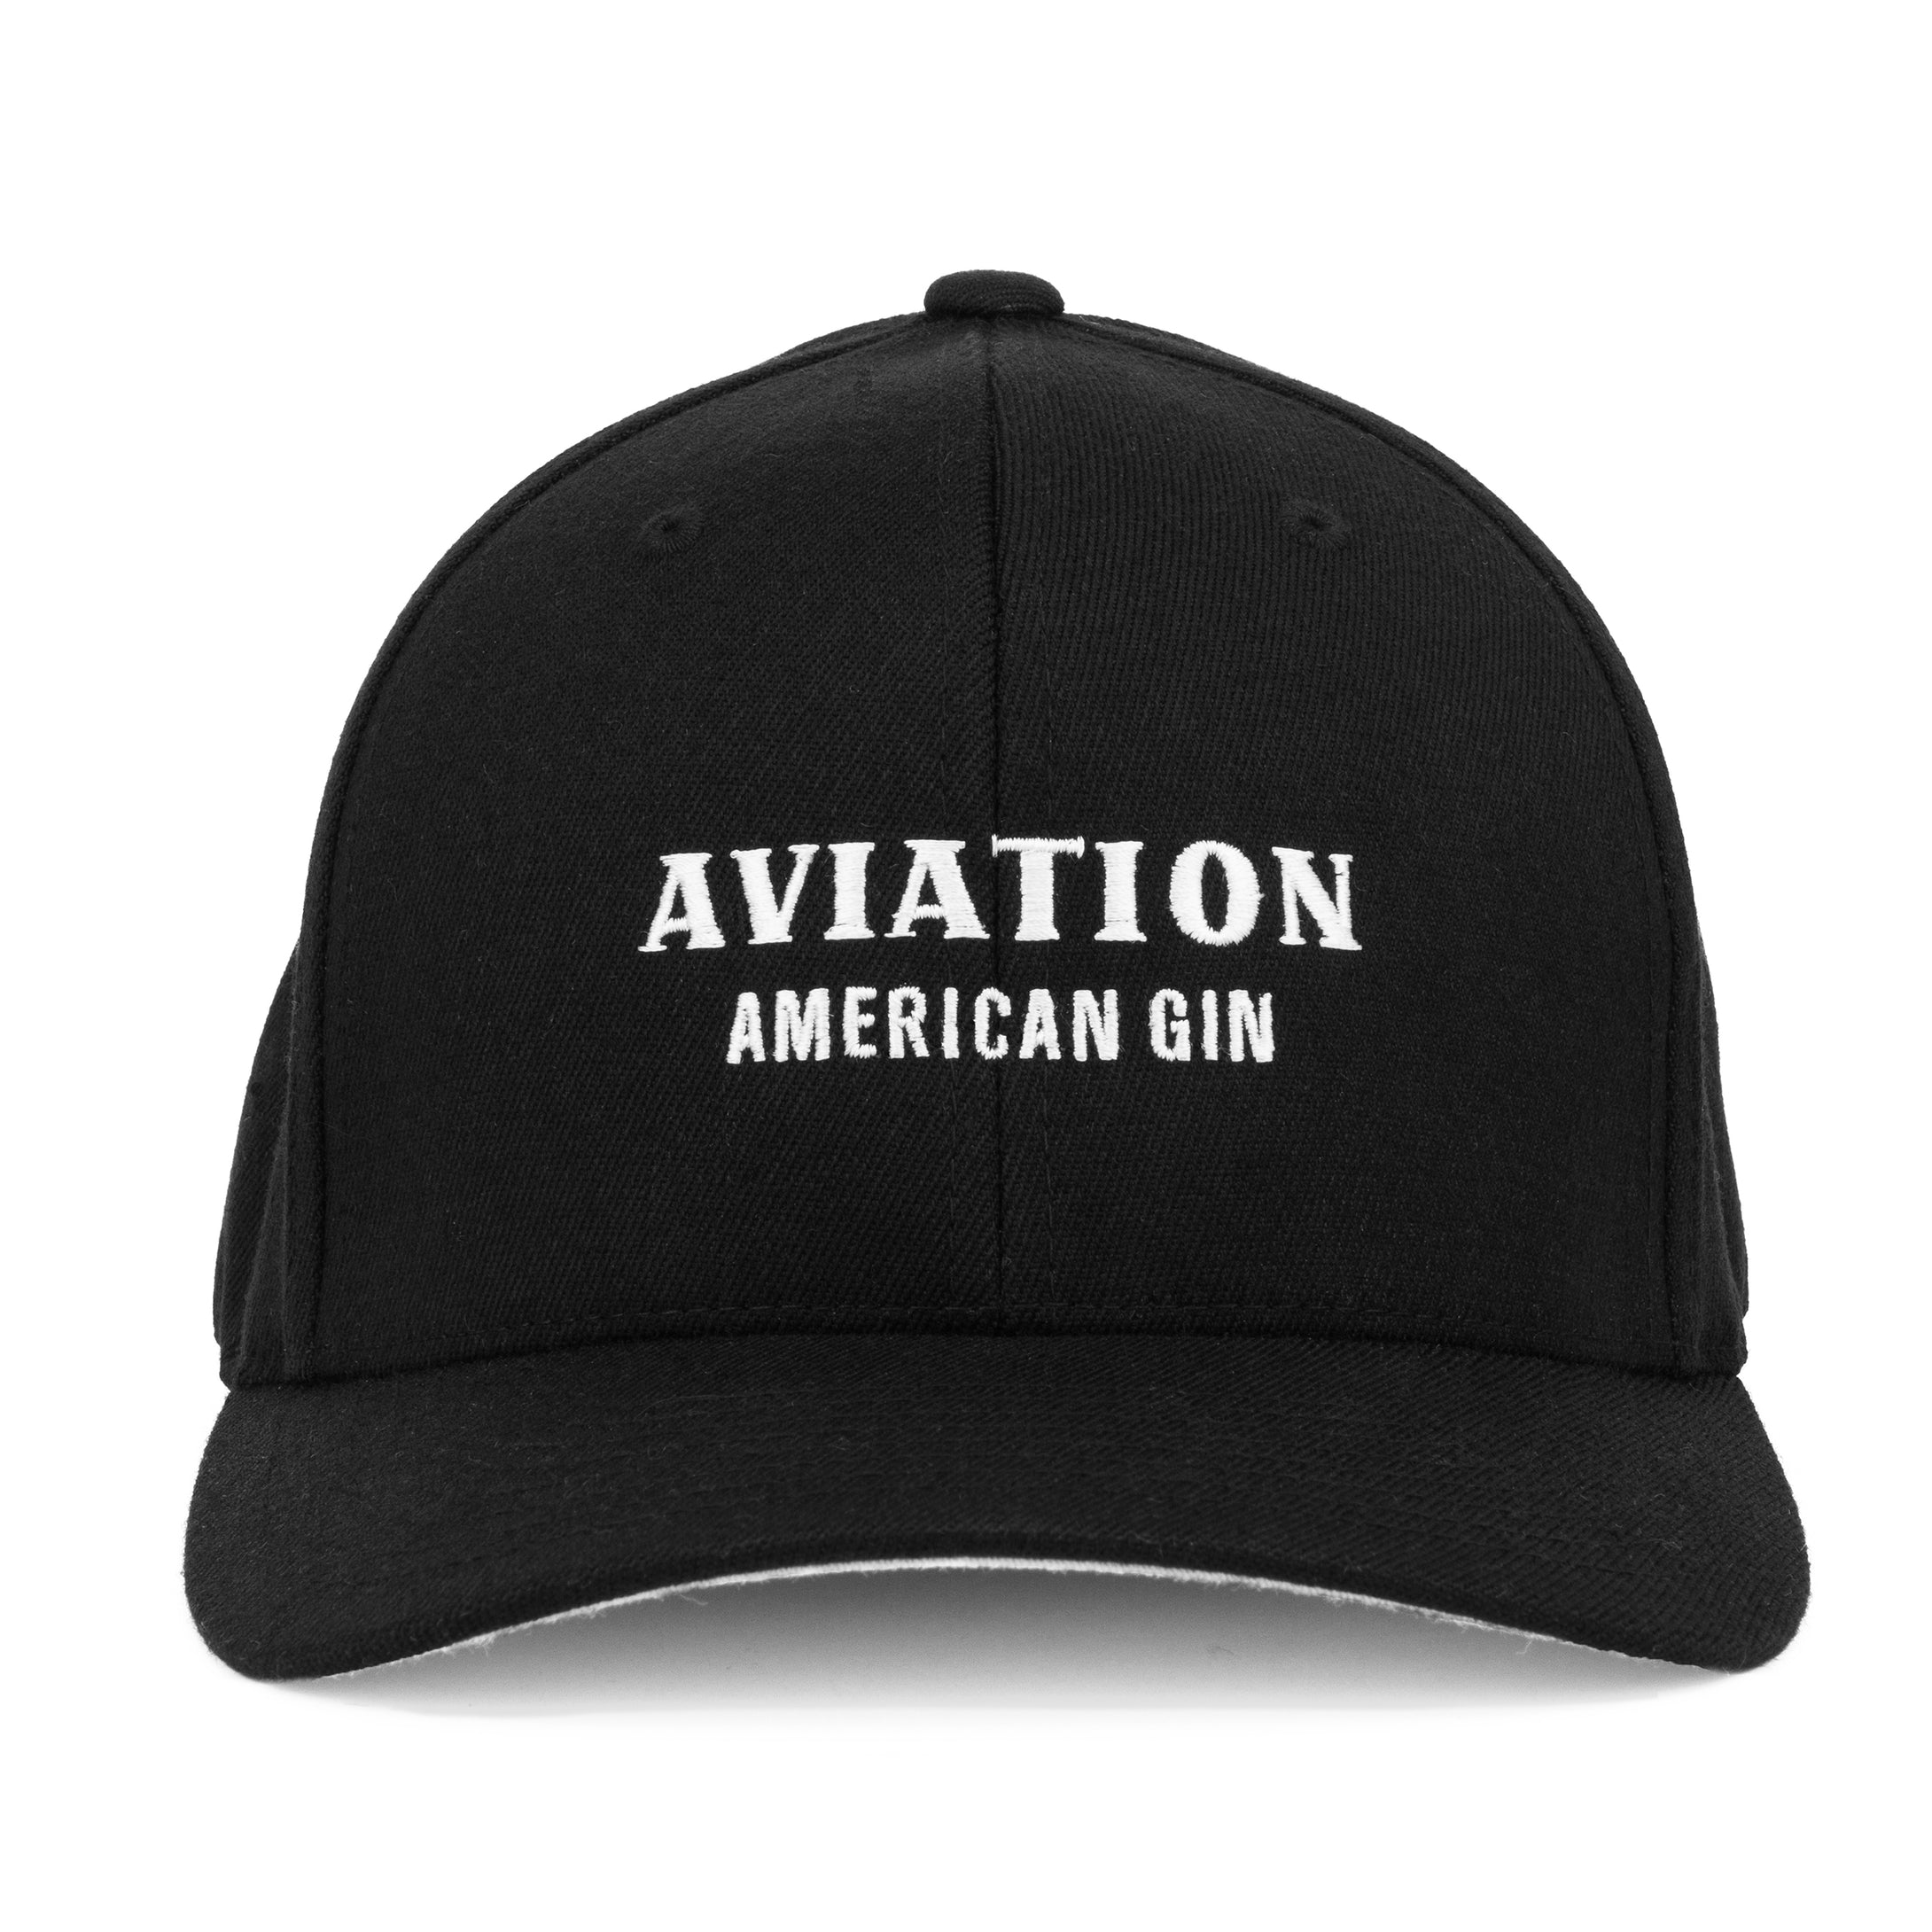 Aviation Flexfit Hat